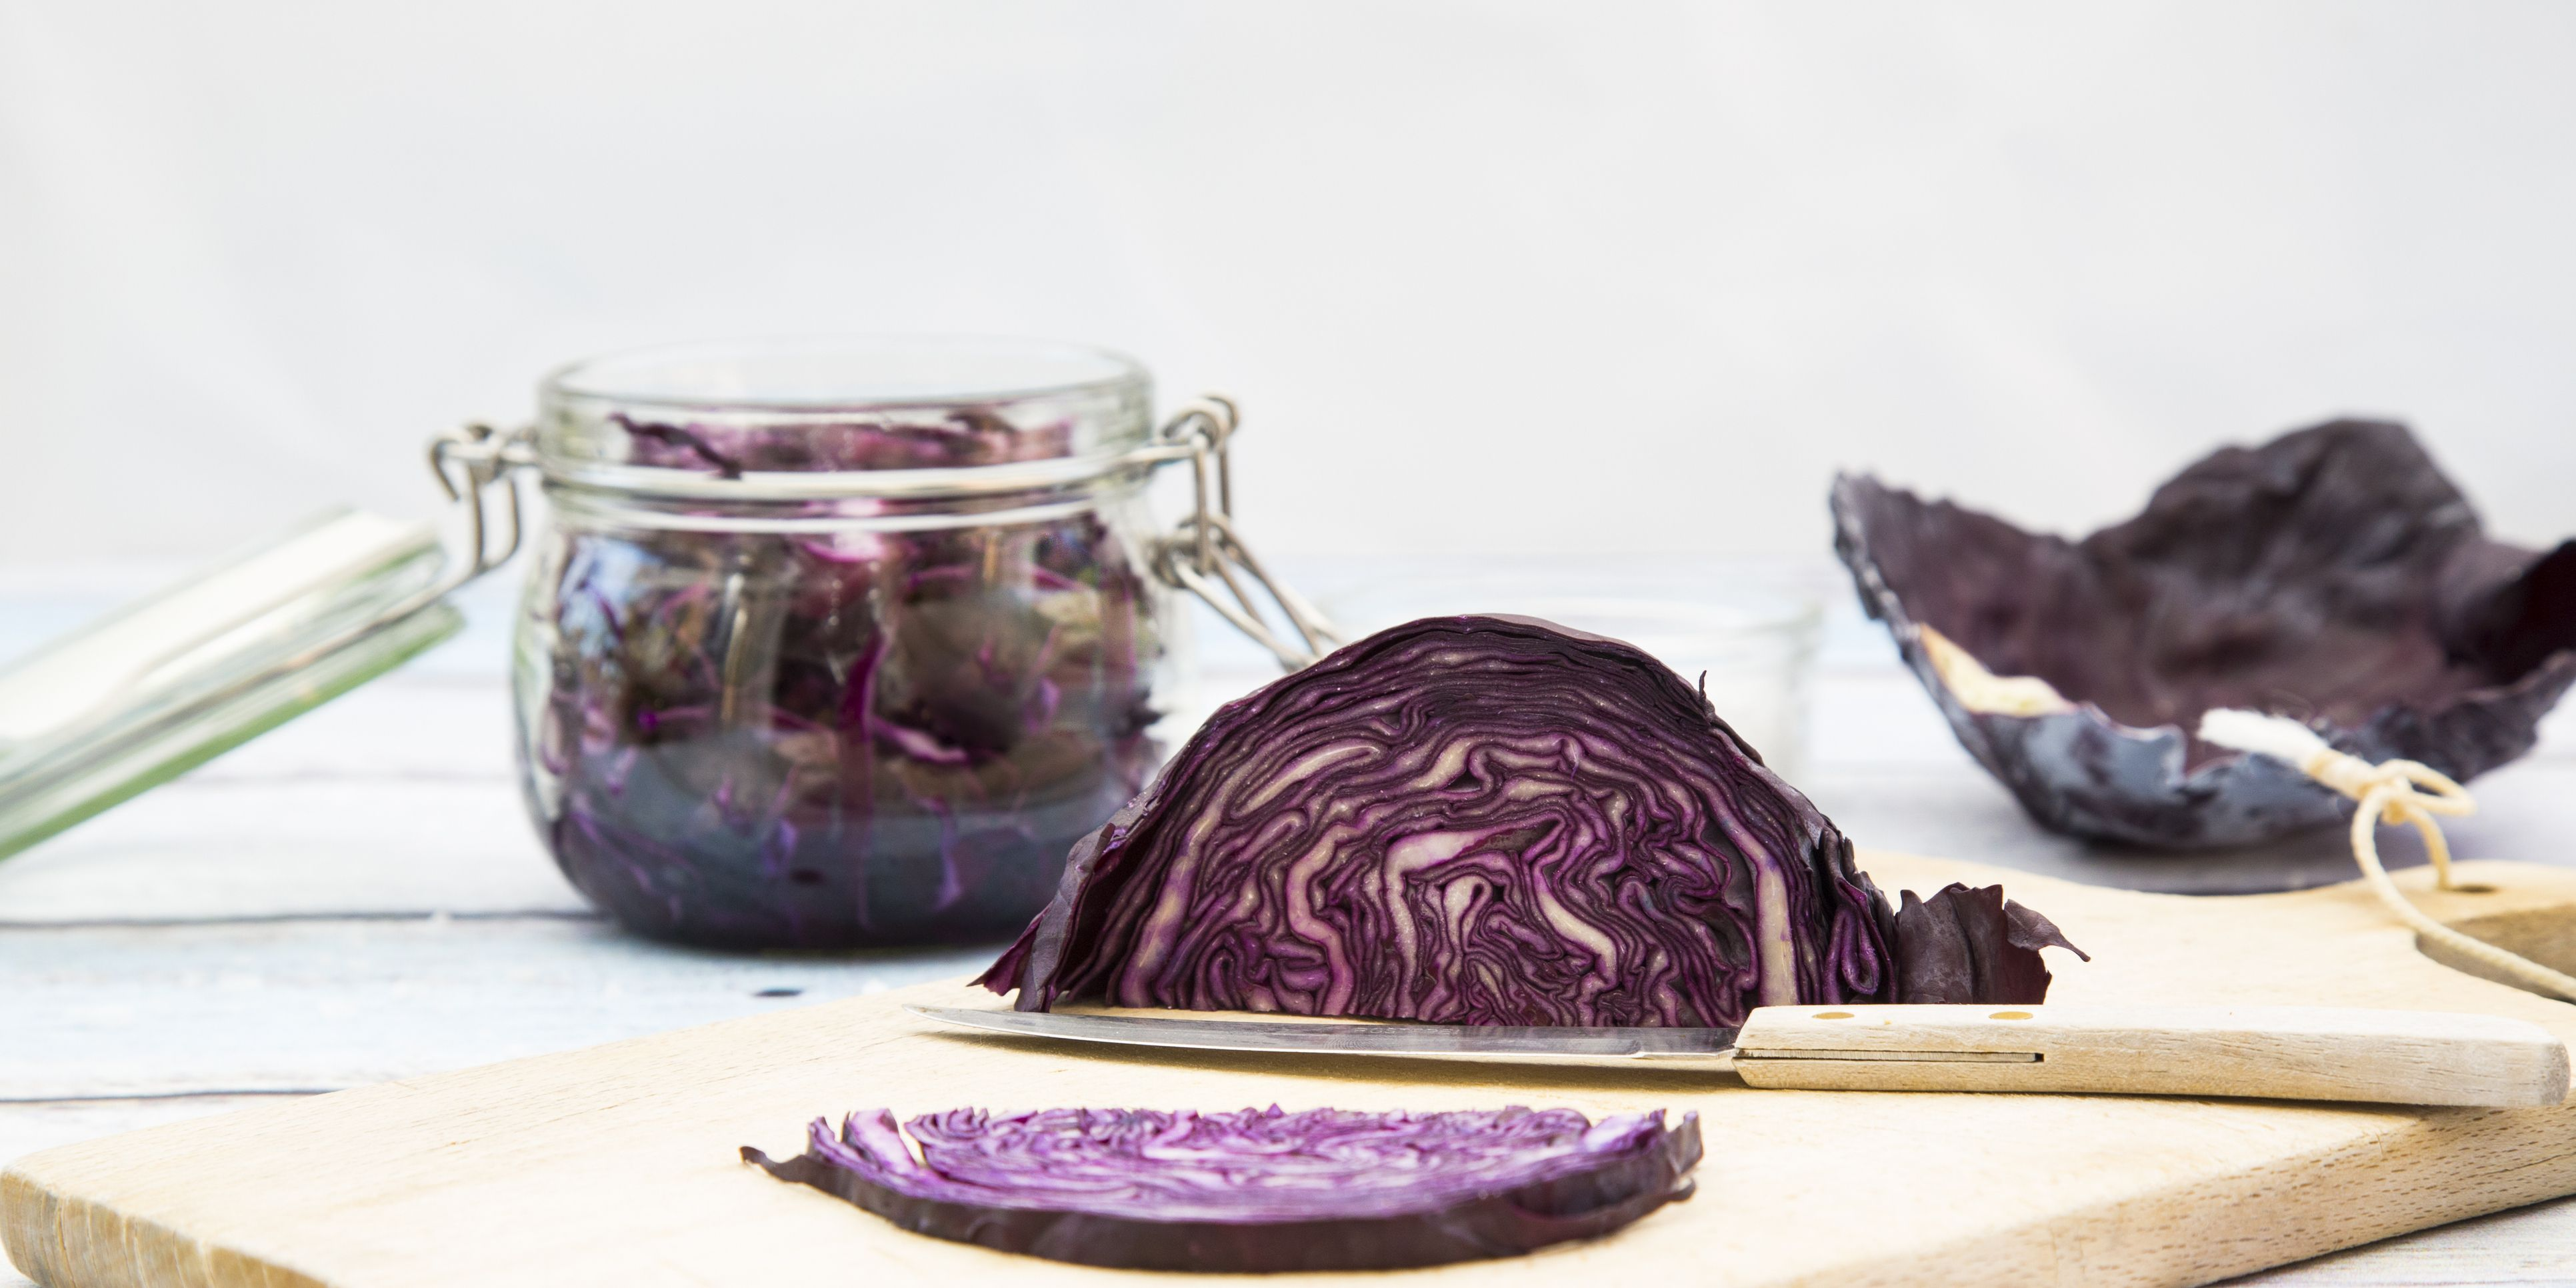 Fermenting red cabbage, what to eat to stay healthy